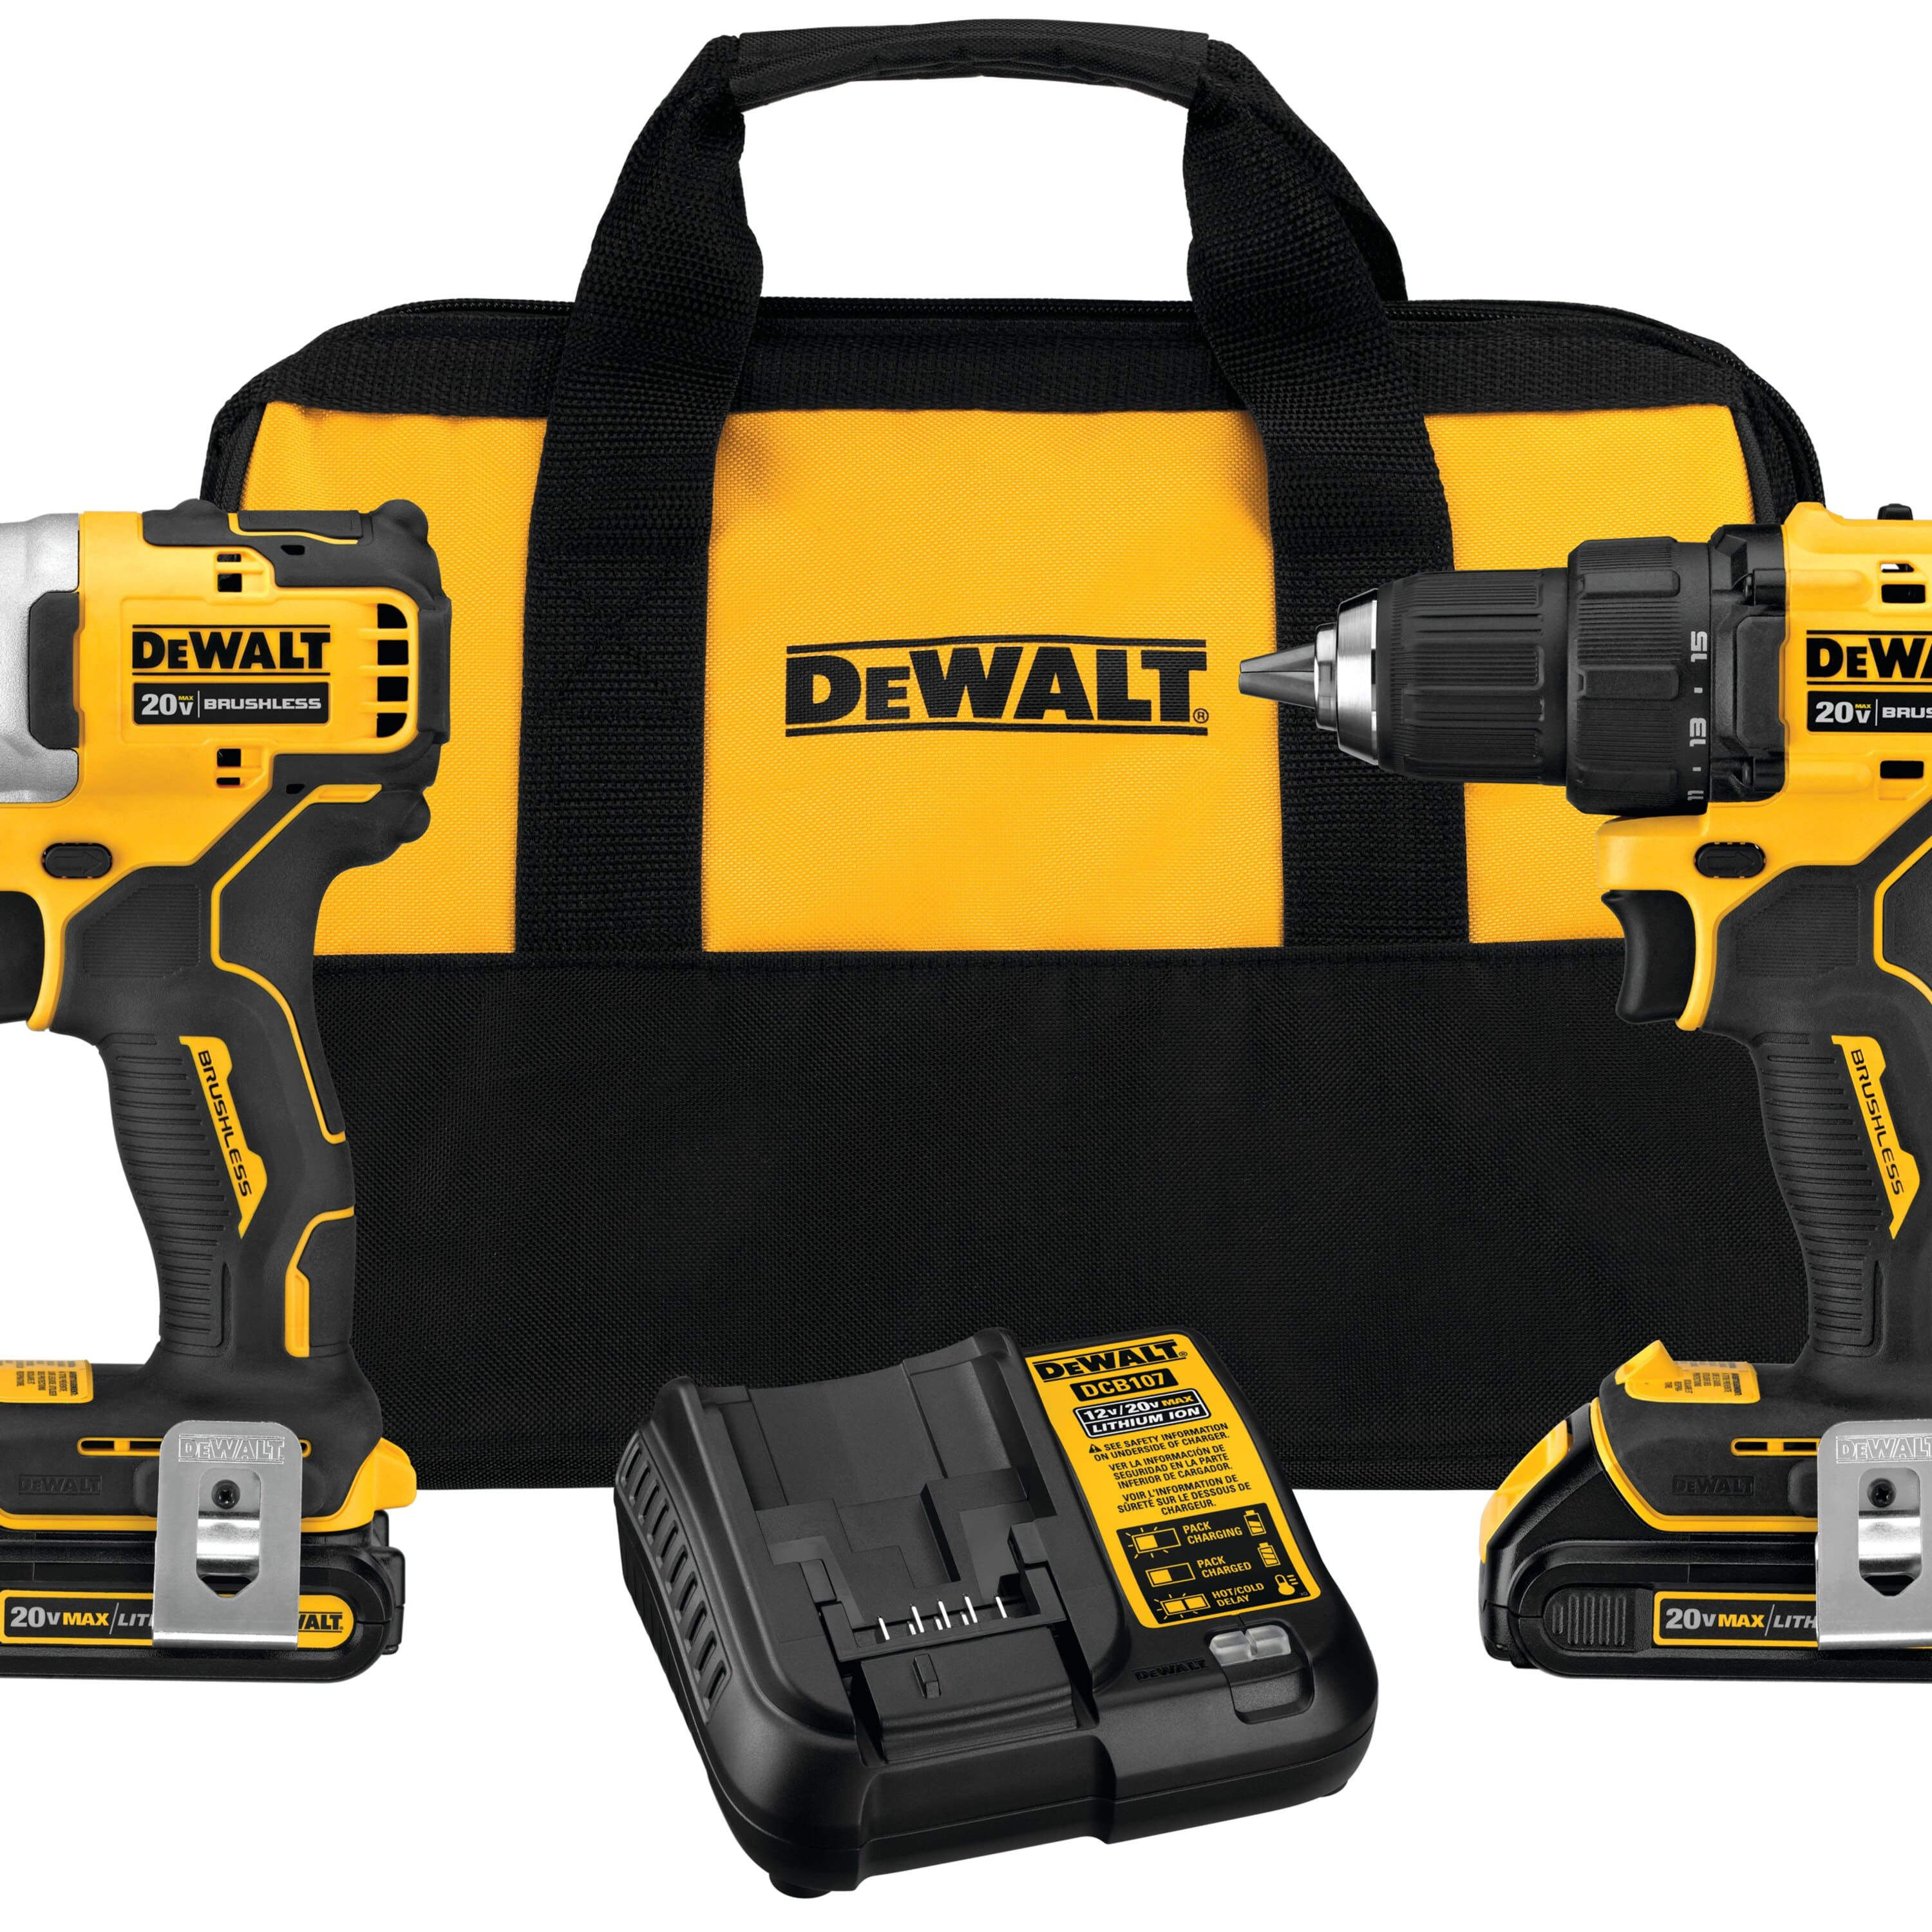 DeWalt 20V MAX Cordless Brushless Compact Drill & Impact Driver Combo -  $184.99 @ Ace Hardware